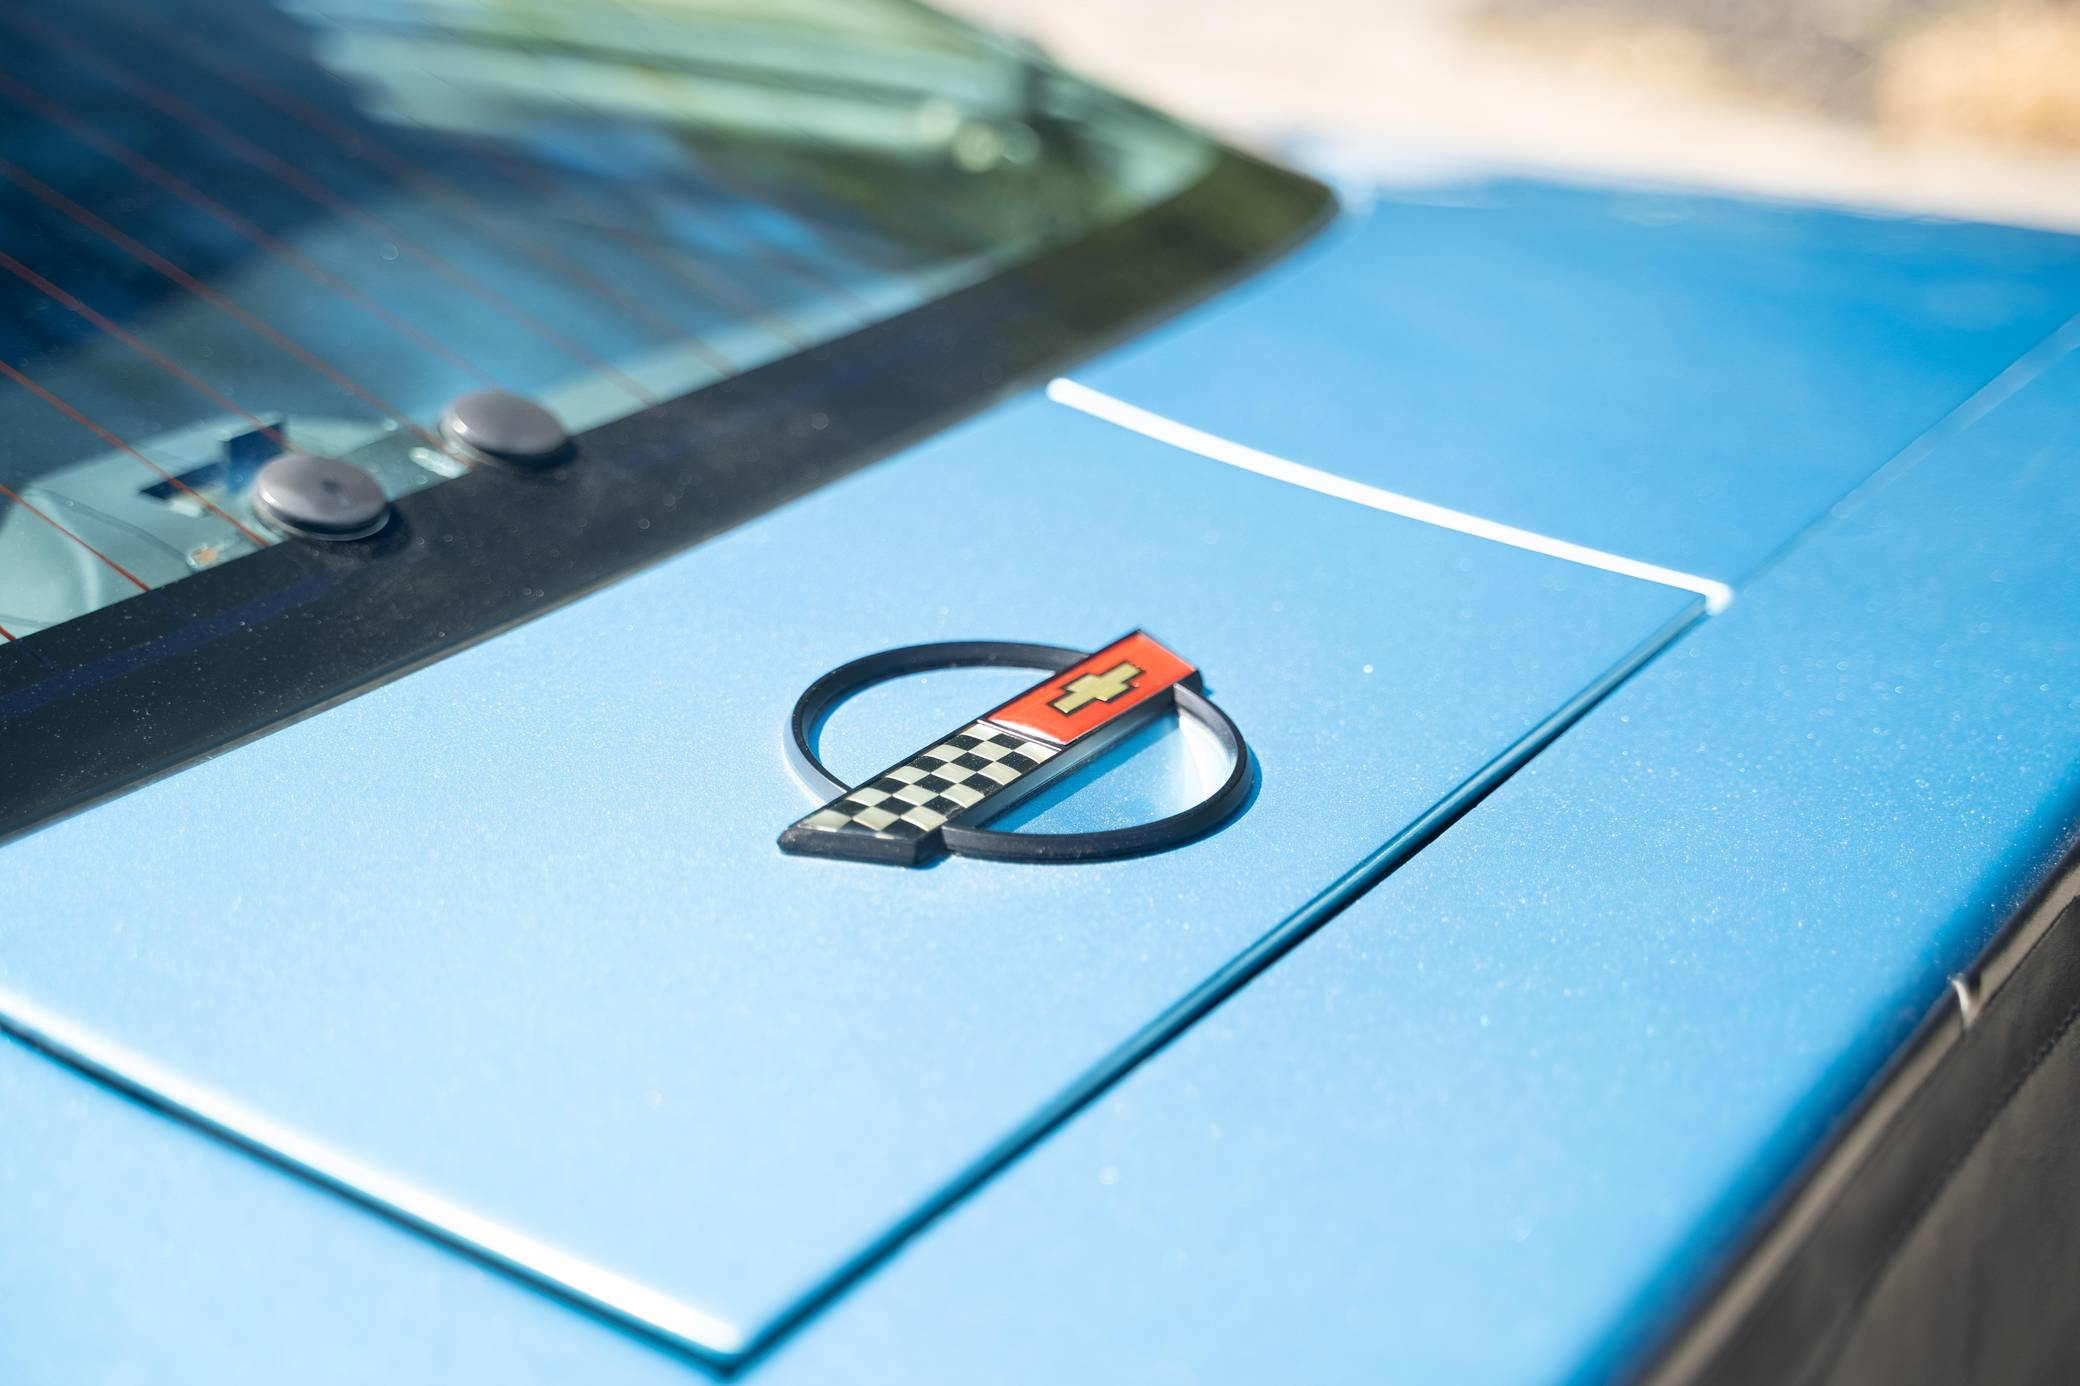 Chevy Vette King of the Hill Prototype emblem